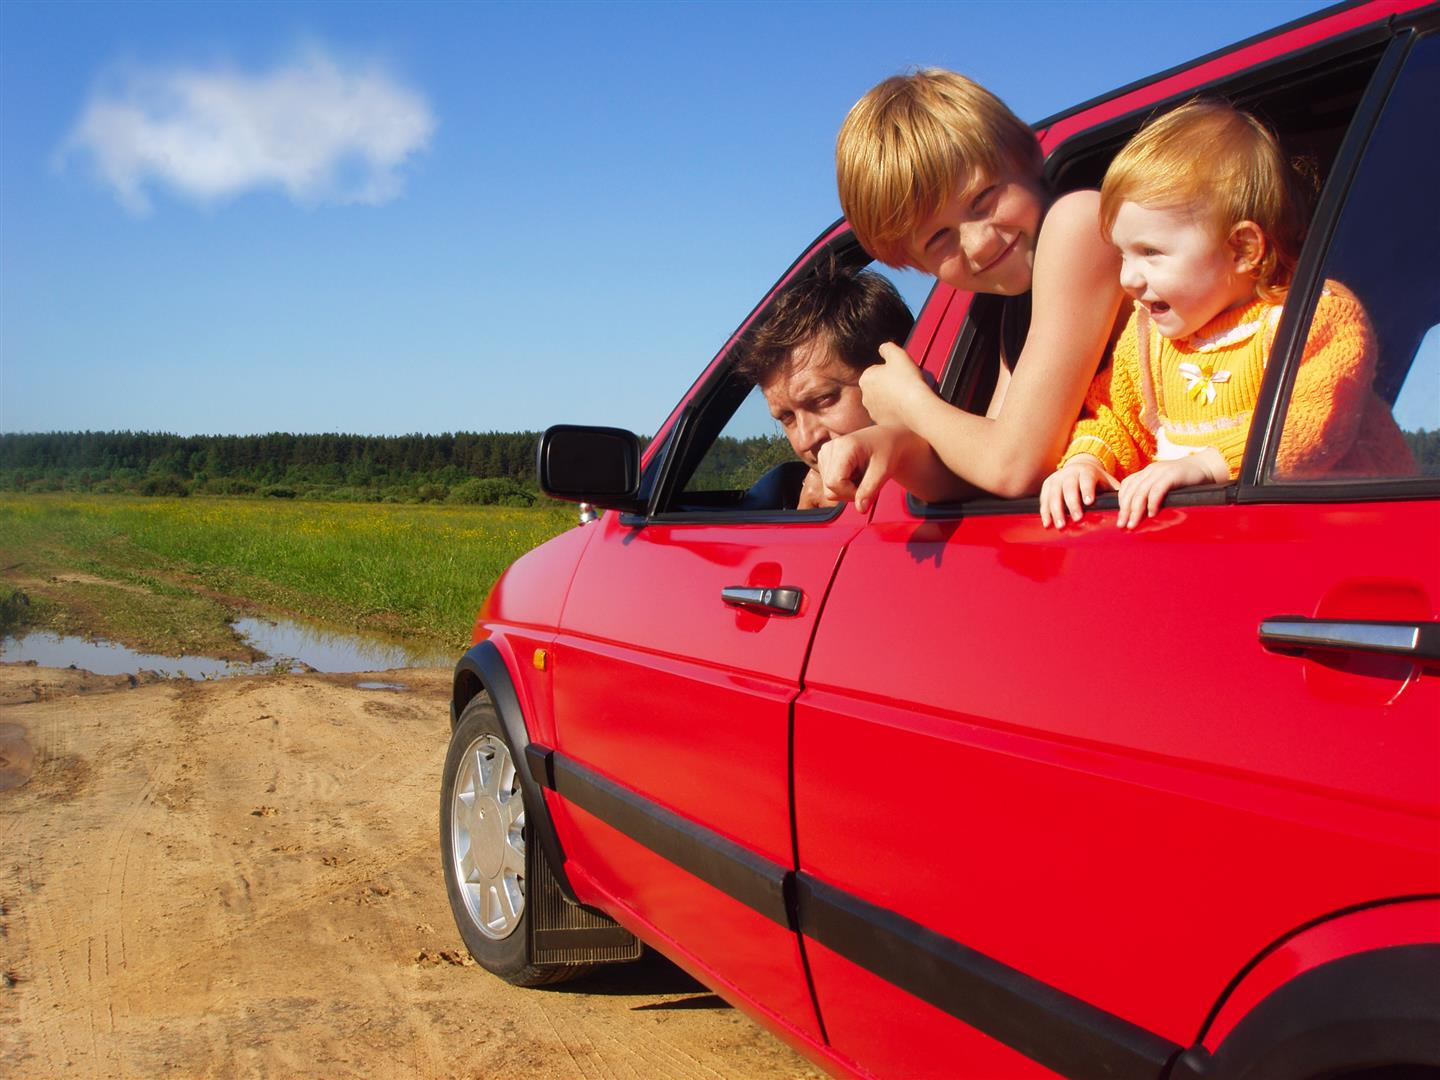 With the Kids Back in School, Now is the Time to Take Care of Your Vehicle